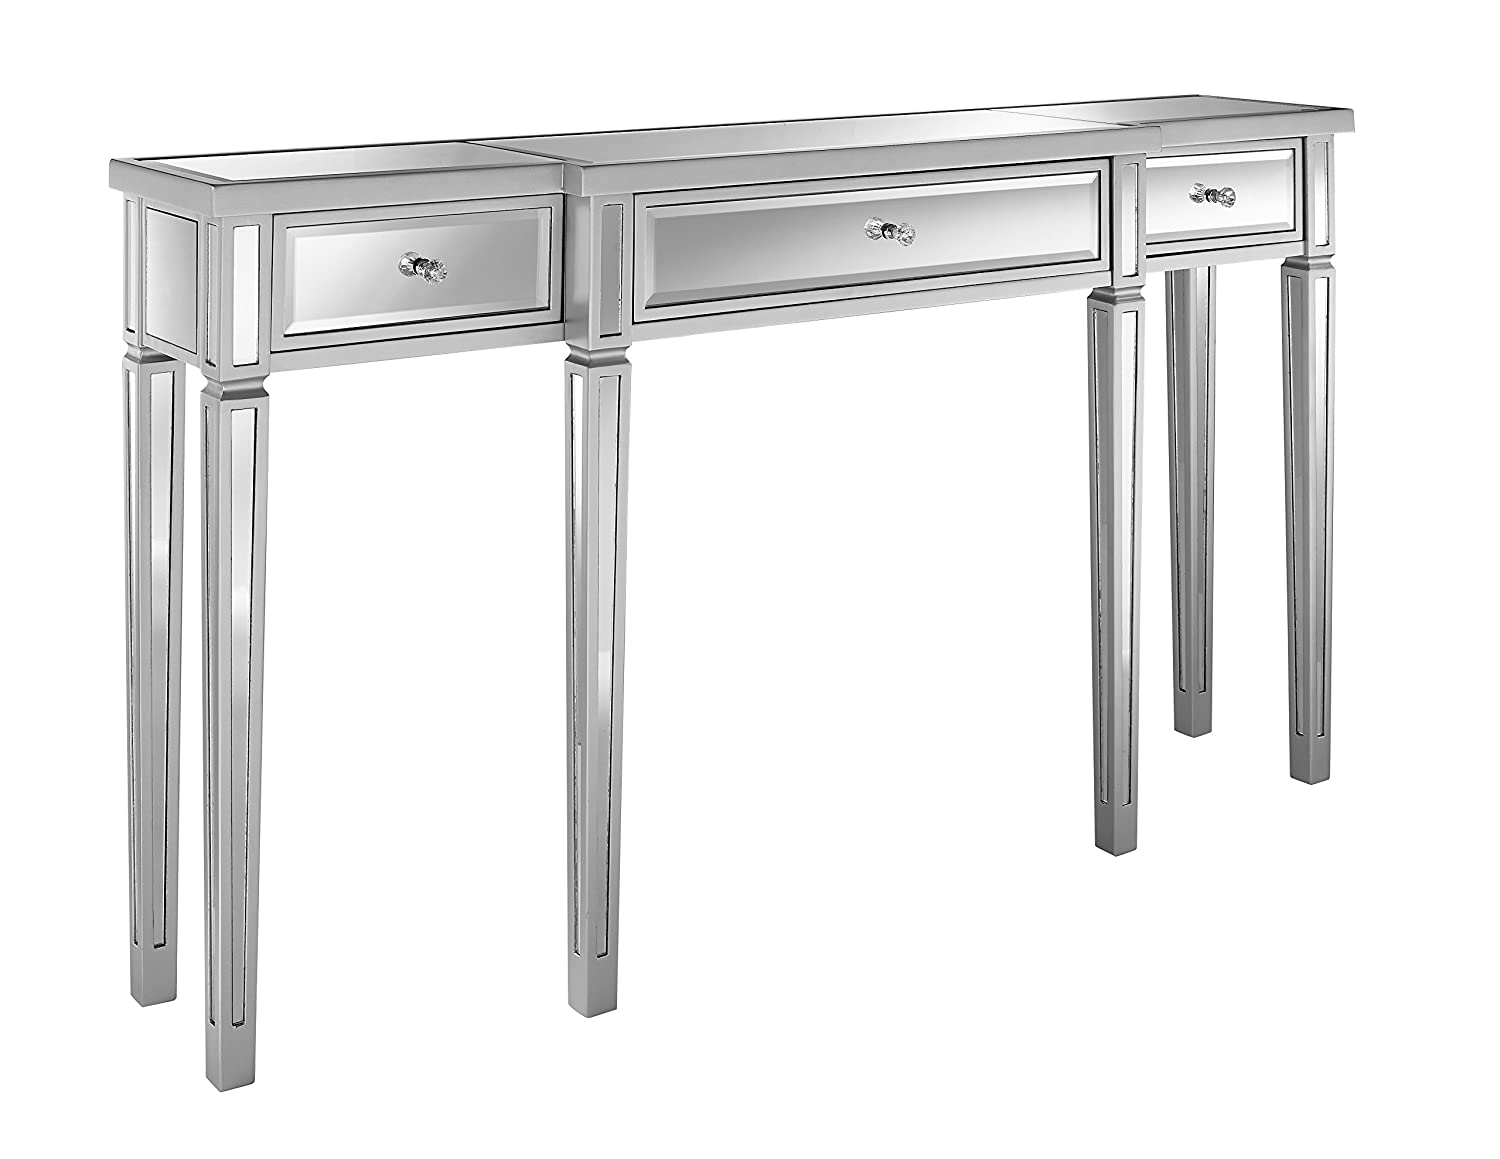 Pulaski Damon Mirrored Console Table, 59.0 L x 12.25 W x 33.0 H